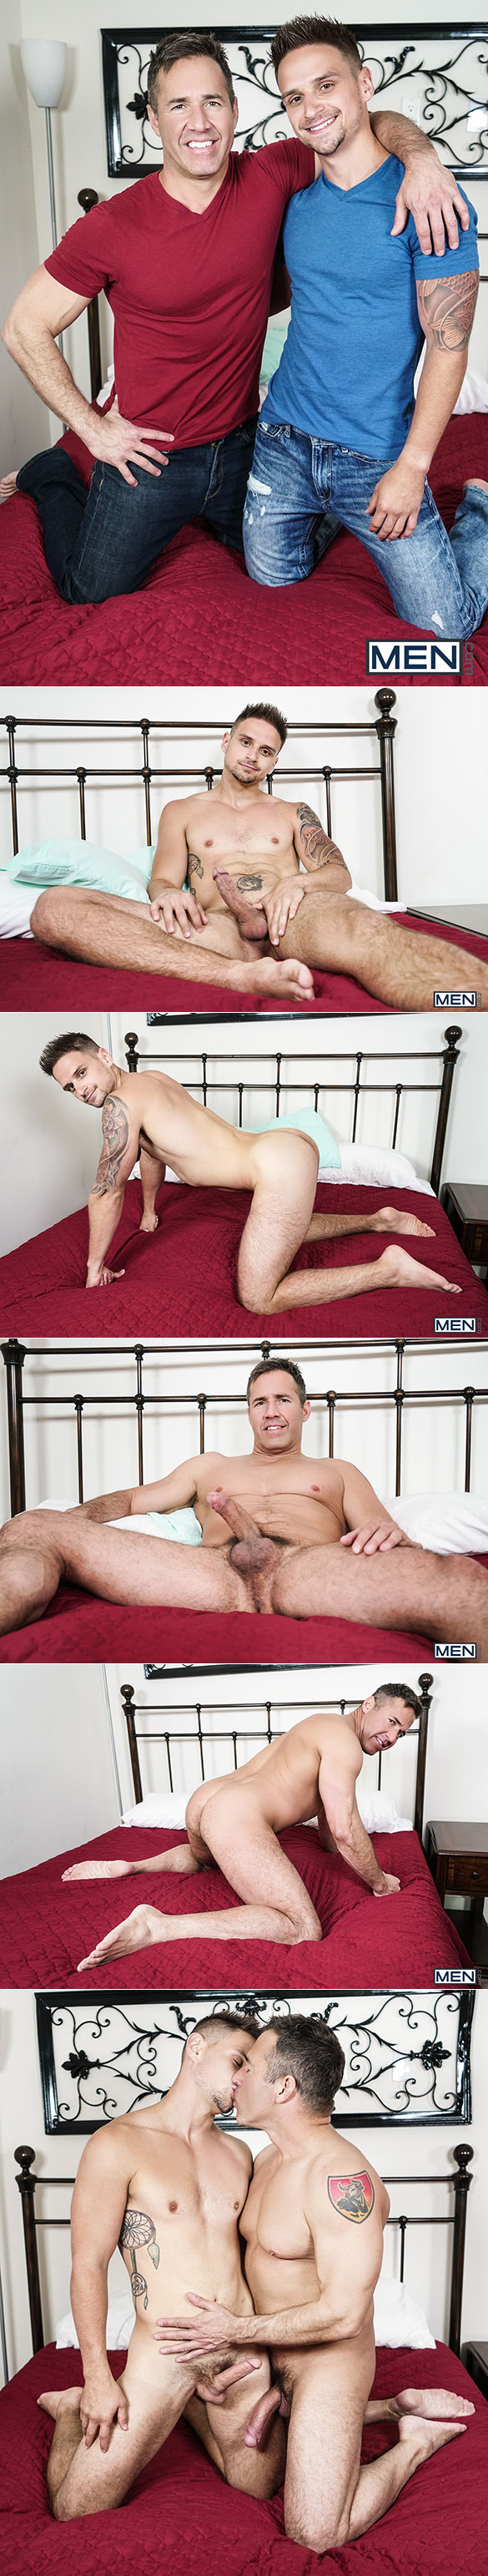 "Men.com: Dean Phoenix fucks Jackson Reed in ""Pimp My Daddy, Part 3"""